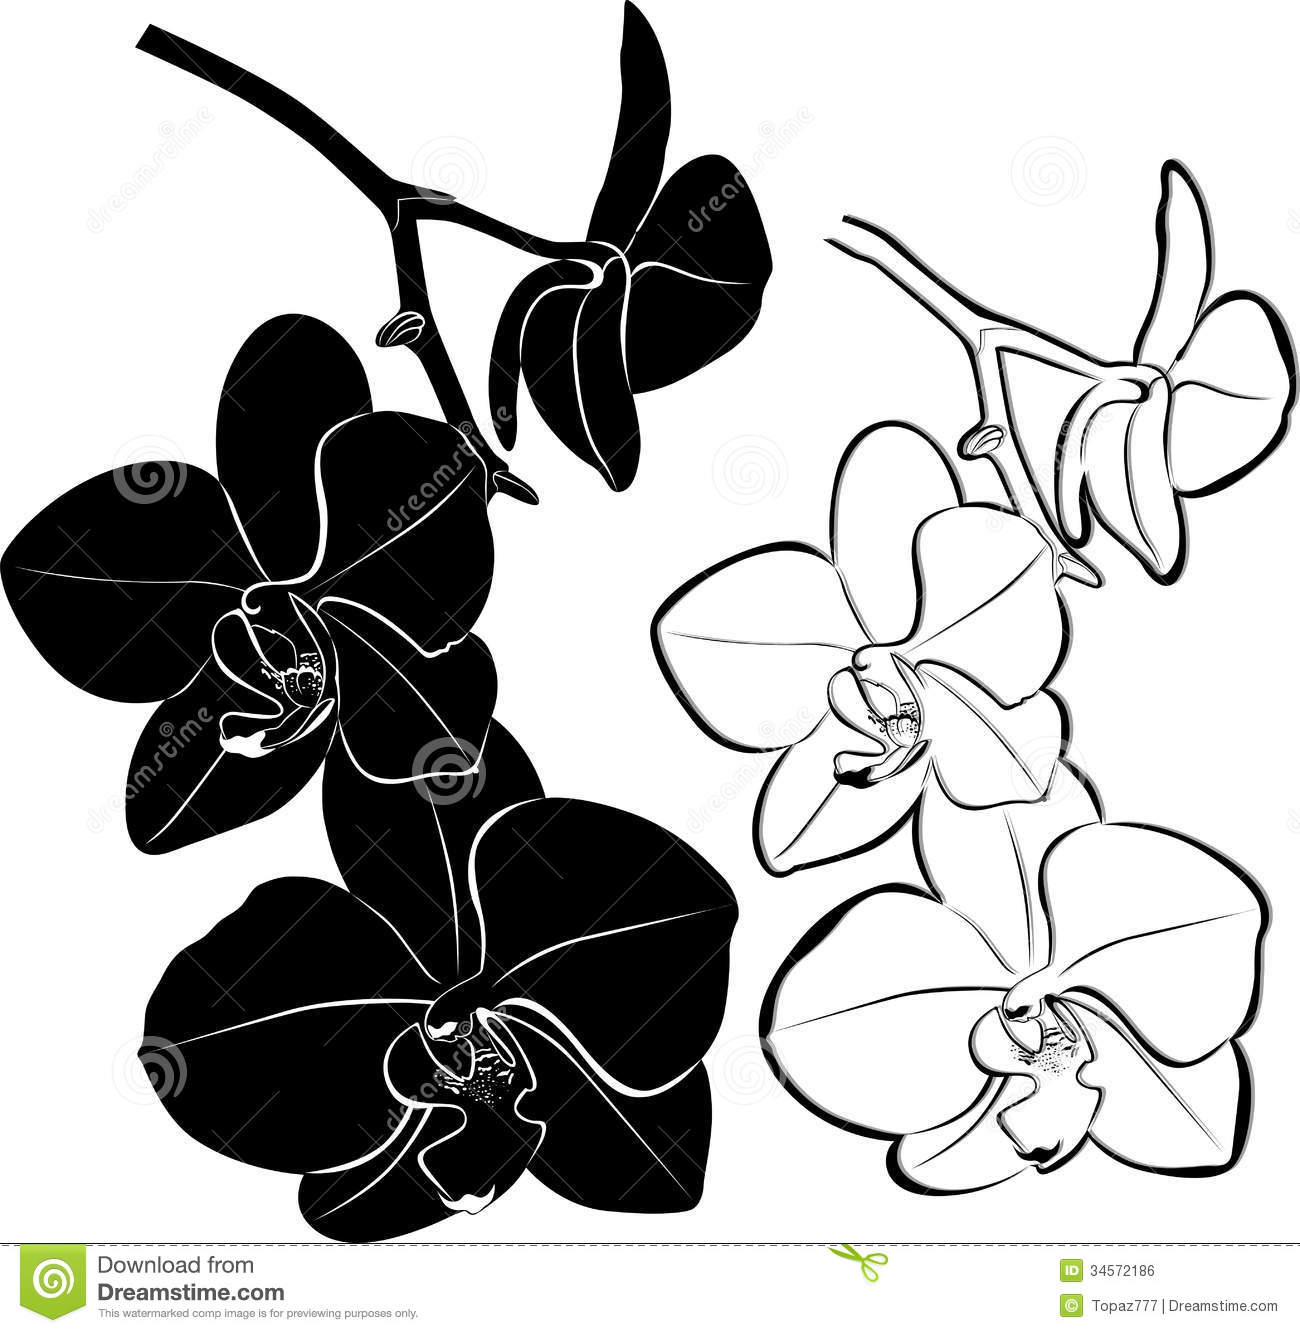 Gousicteco orchid drawing images orchid drawing mightylinksfo